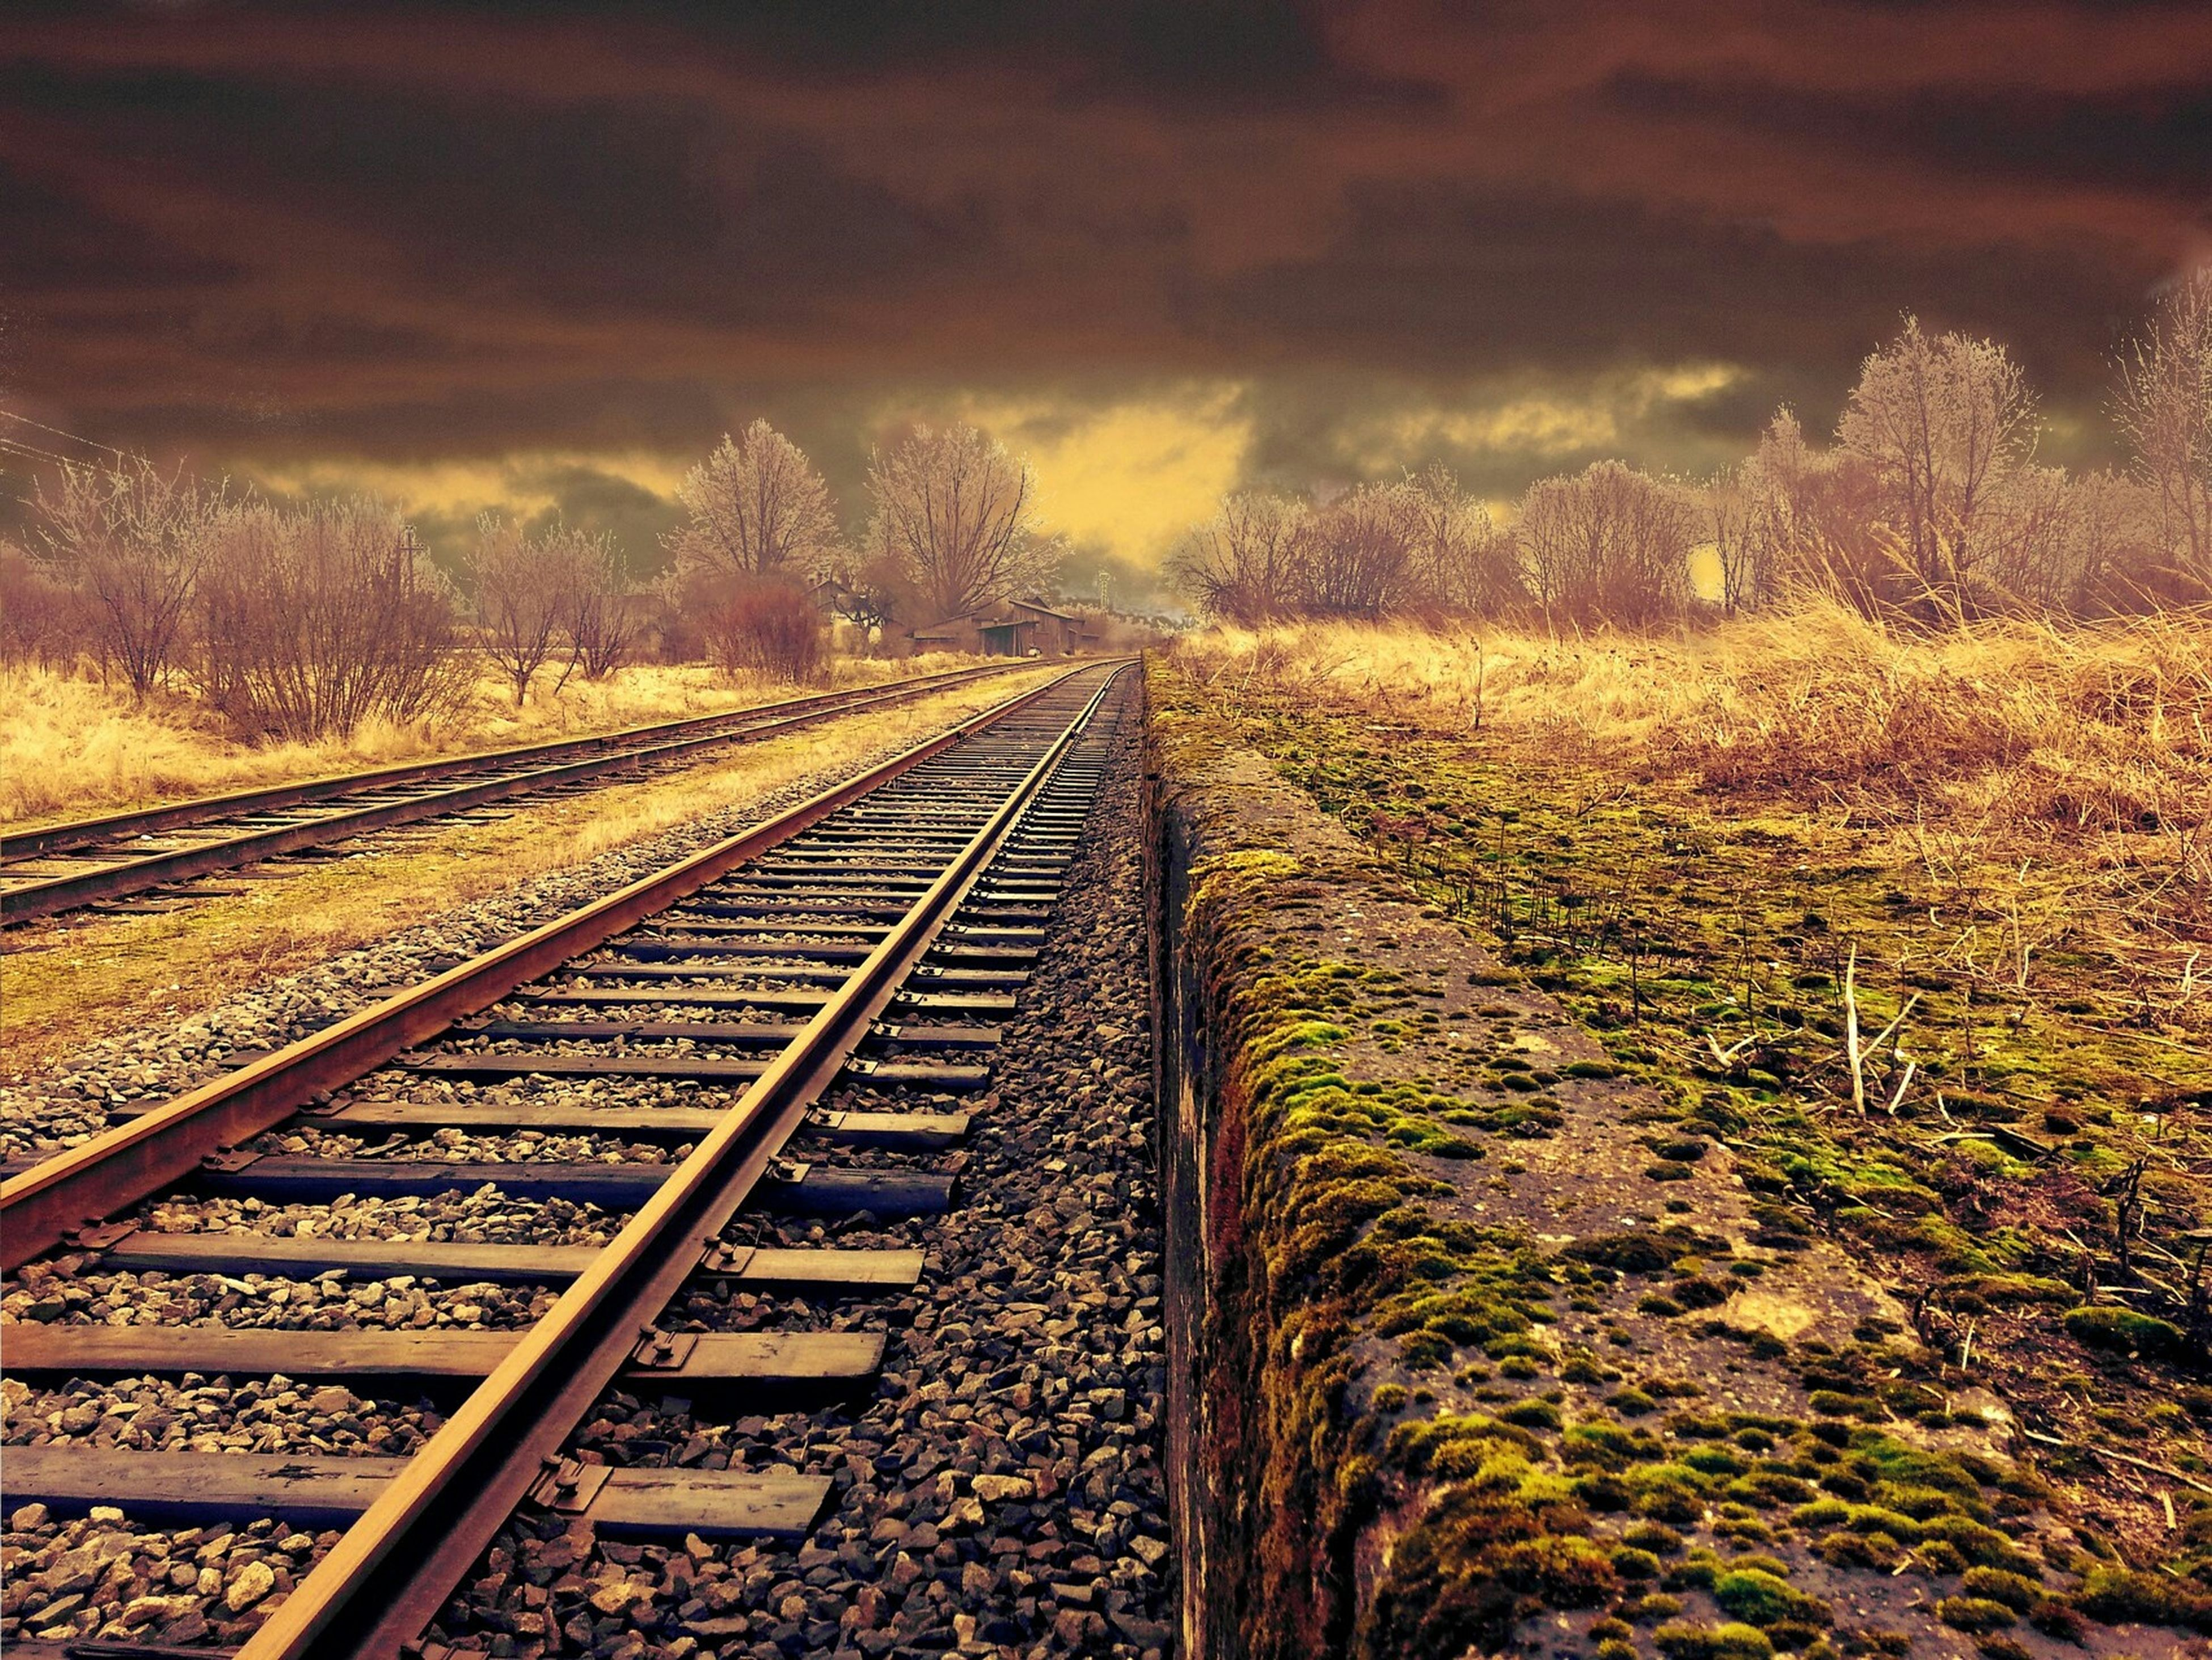 railroad track, rail transportation, the way forward, diminishing perspective, vanishing point, transportation, sky, railway track, tree, cloud - sky, straight, landscape, nature, tranquility, public transportation, no people, tranquil scene, outdoors, day, long